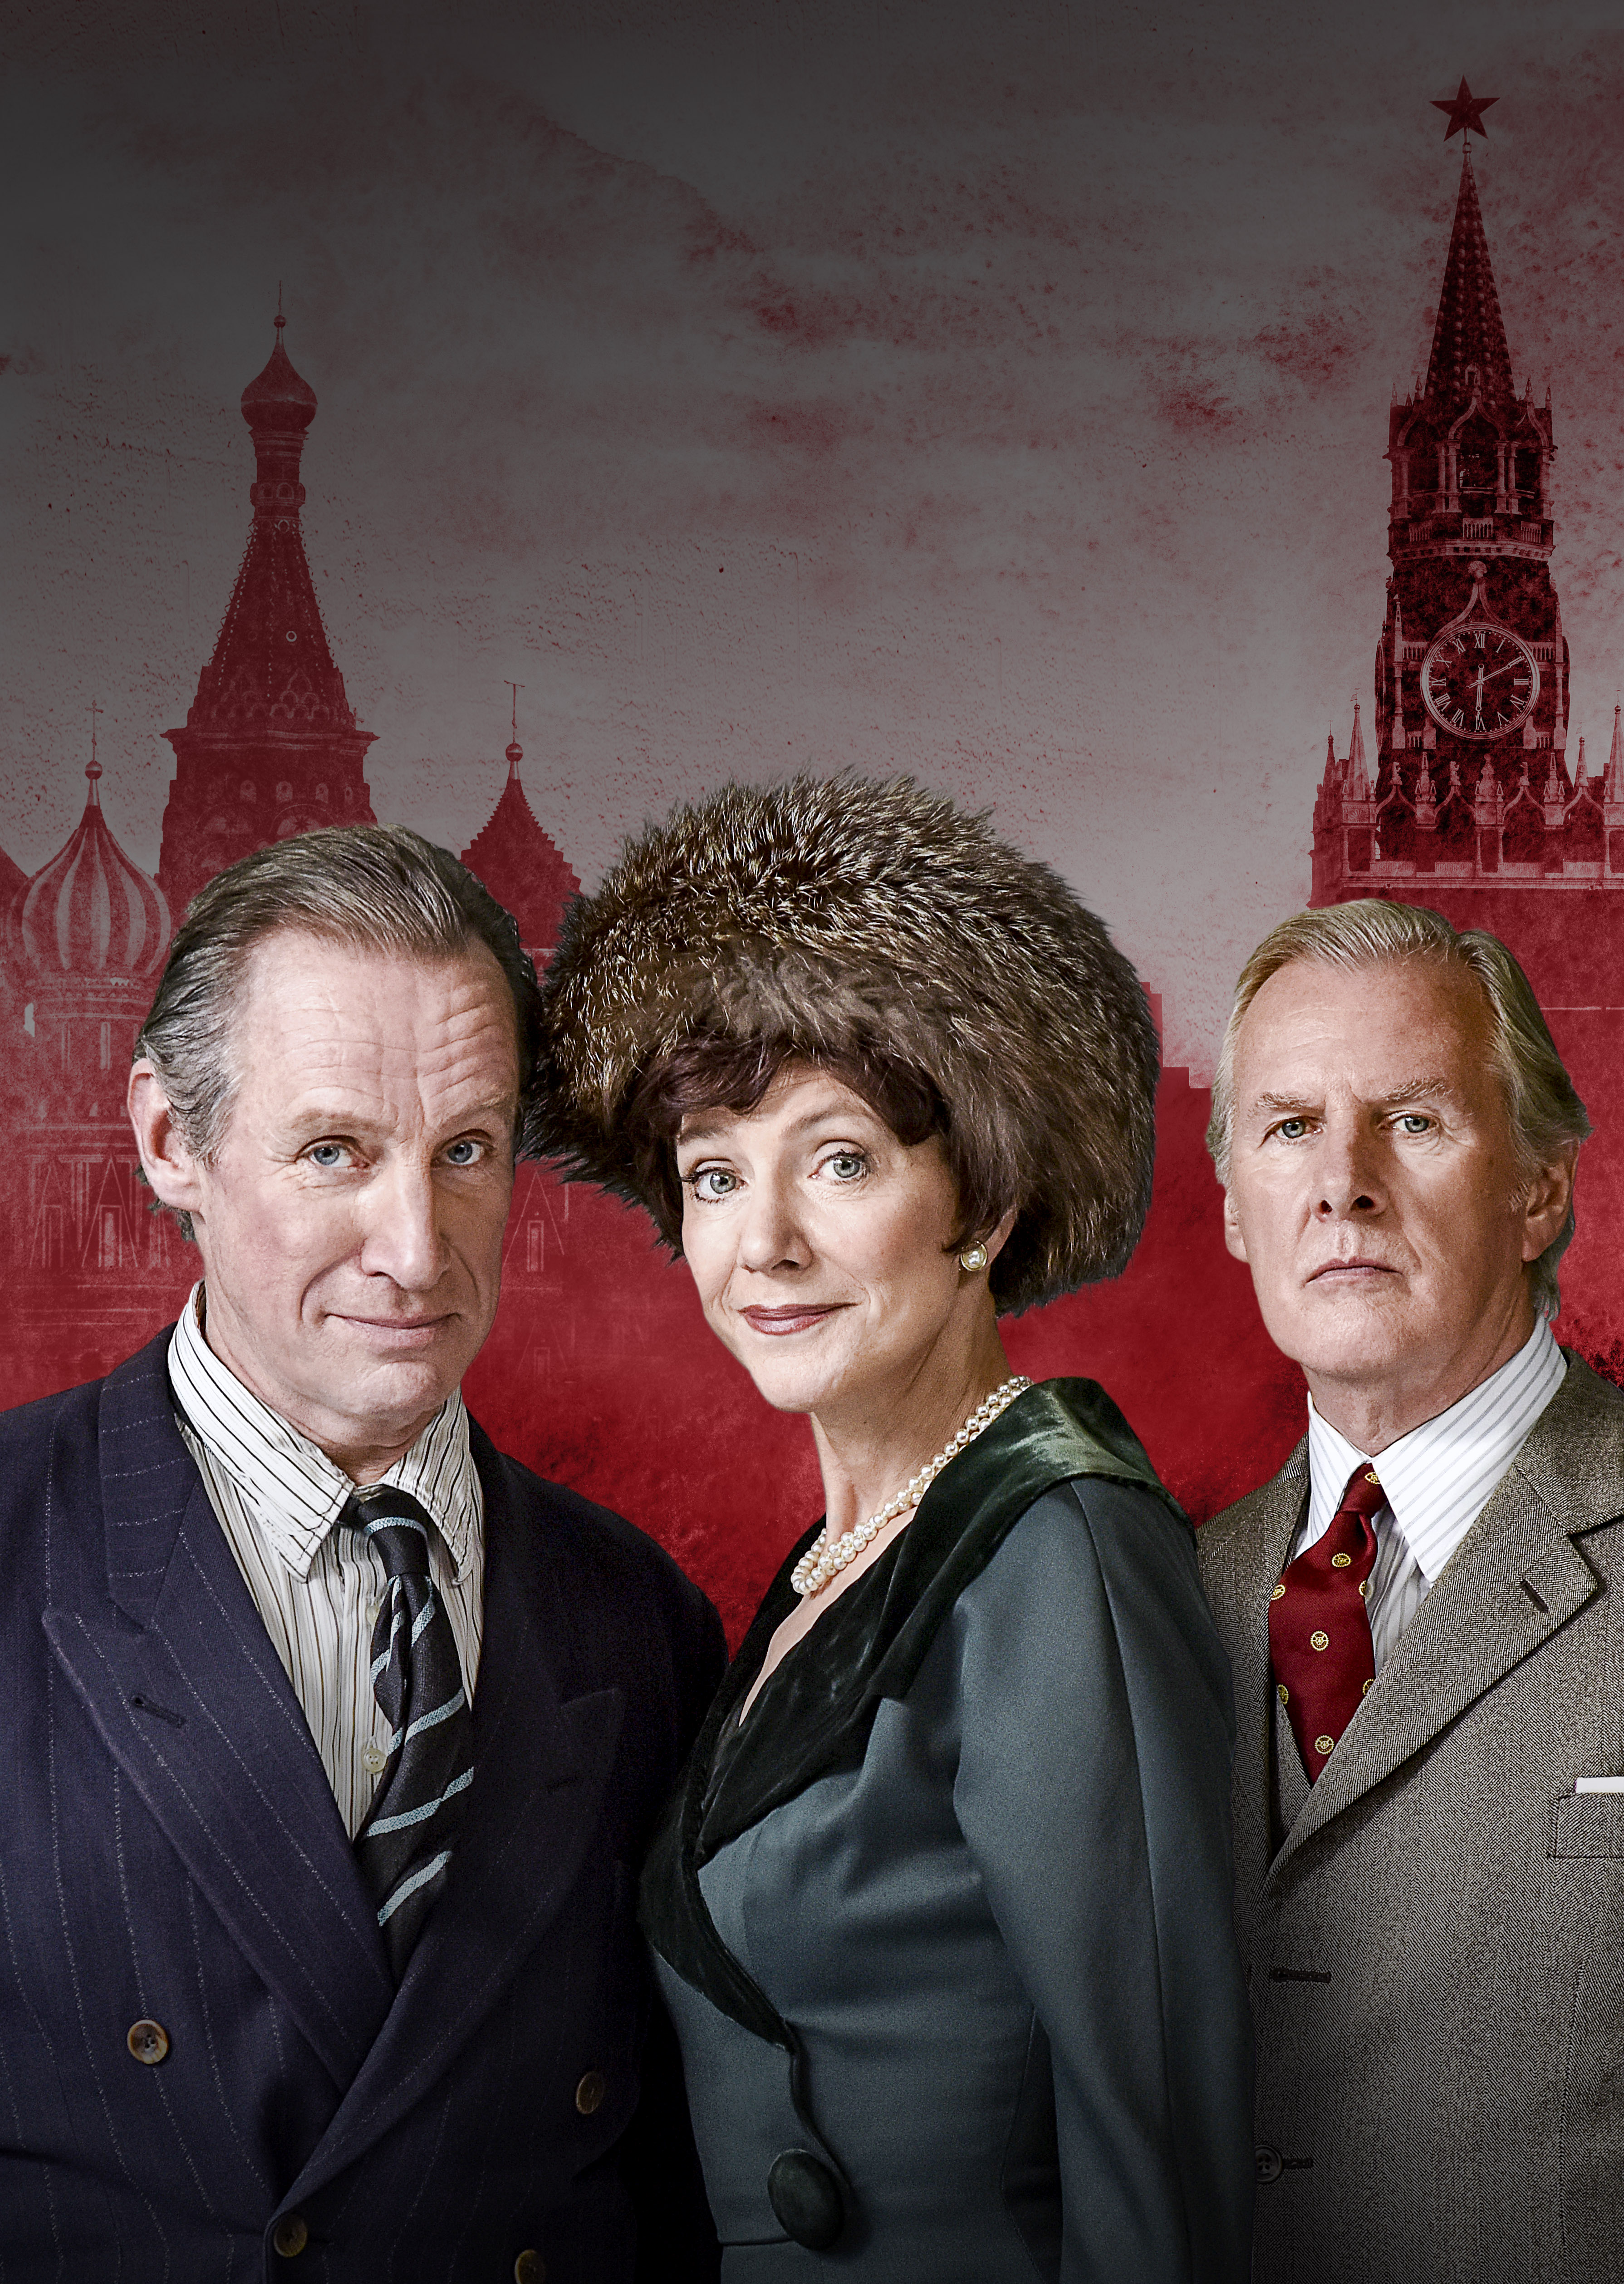 Nicholas Farrell, Belinda Lang and David Robb in Single Spies. Photography by Hugo Glendinning - Theatre Royal Bath - Theatre Bath